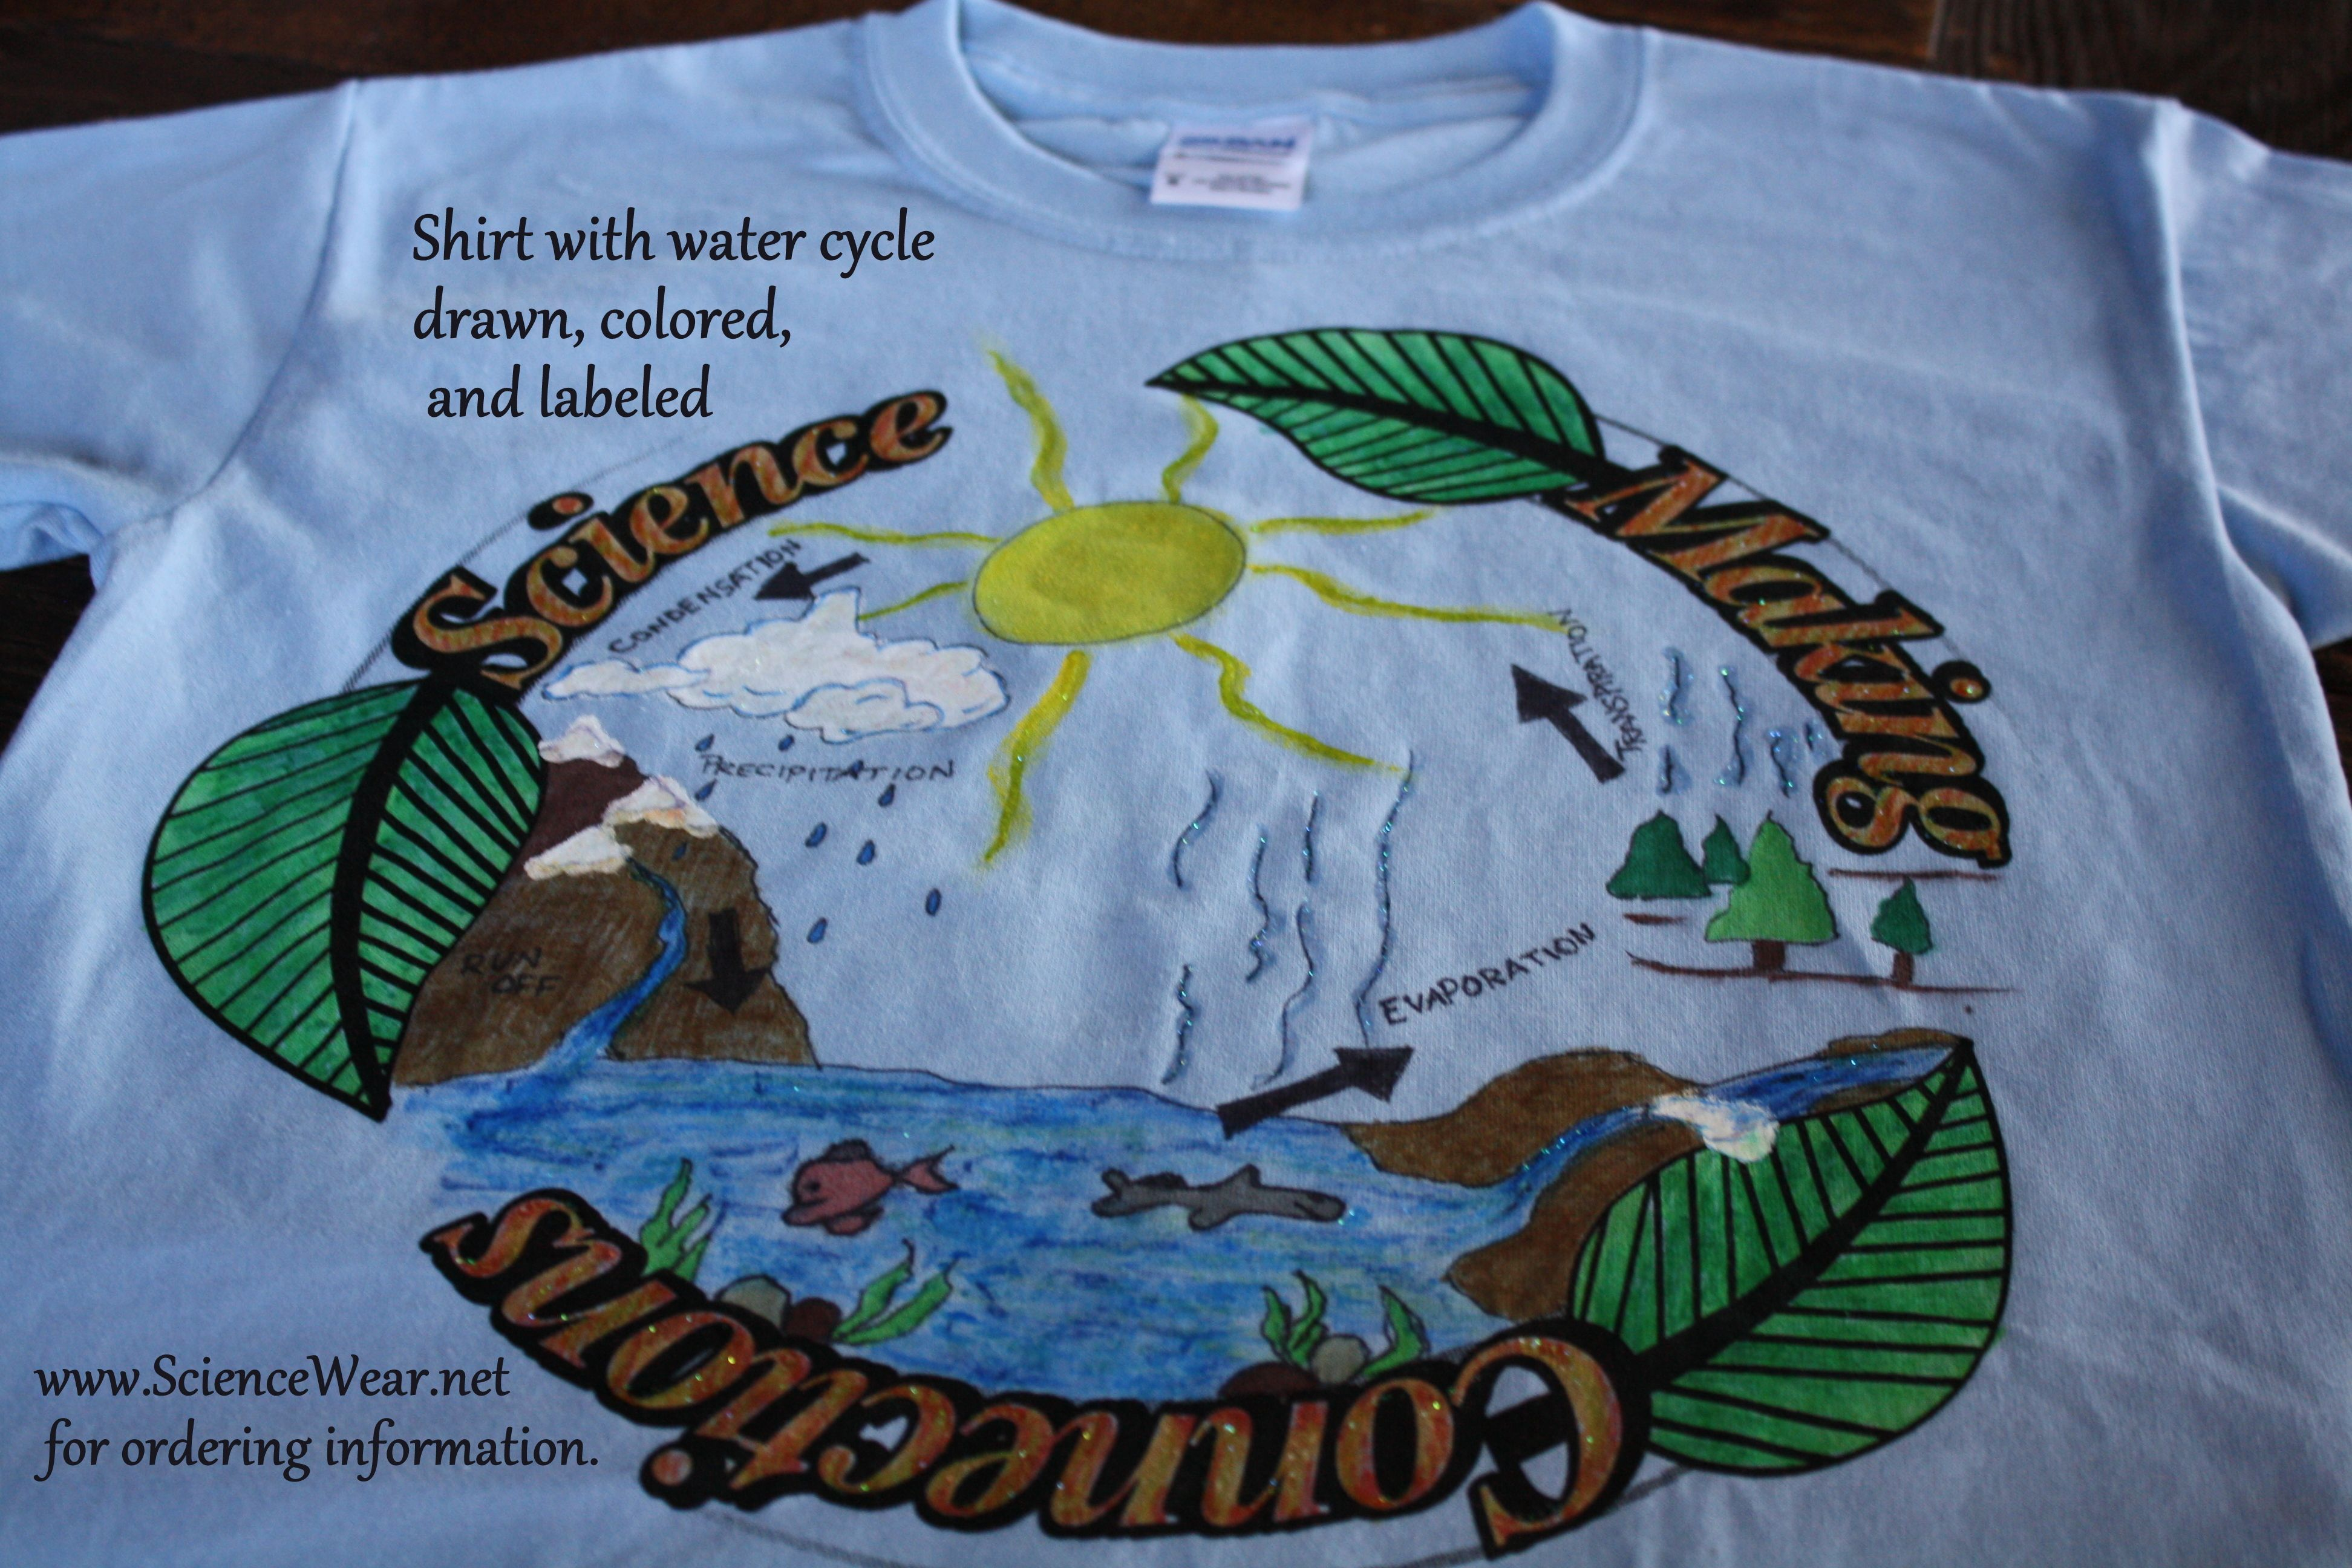 Water Cycle Wearable Shirts Are Only 5 And Shipping Is